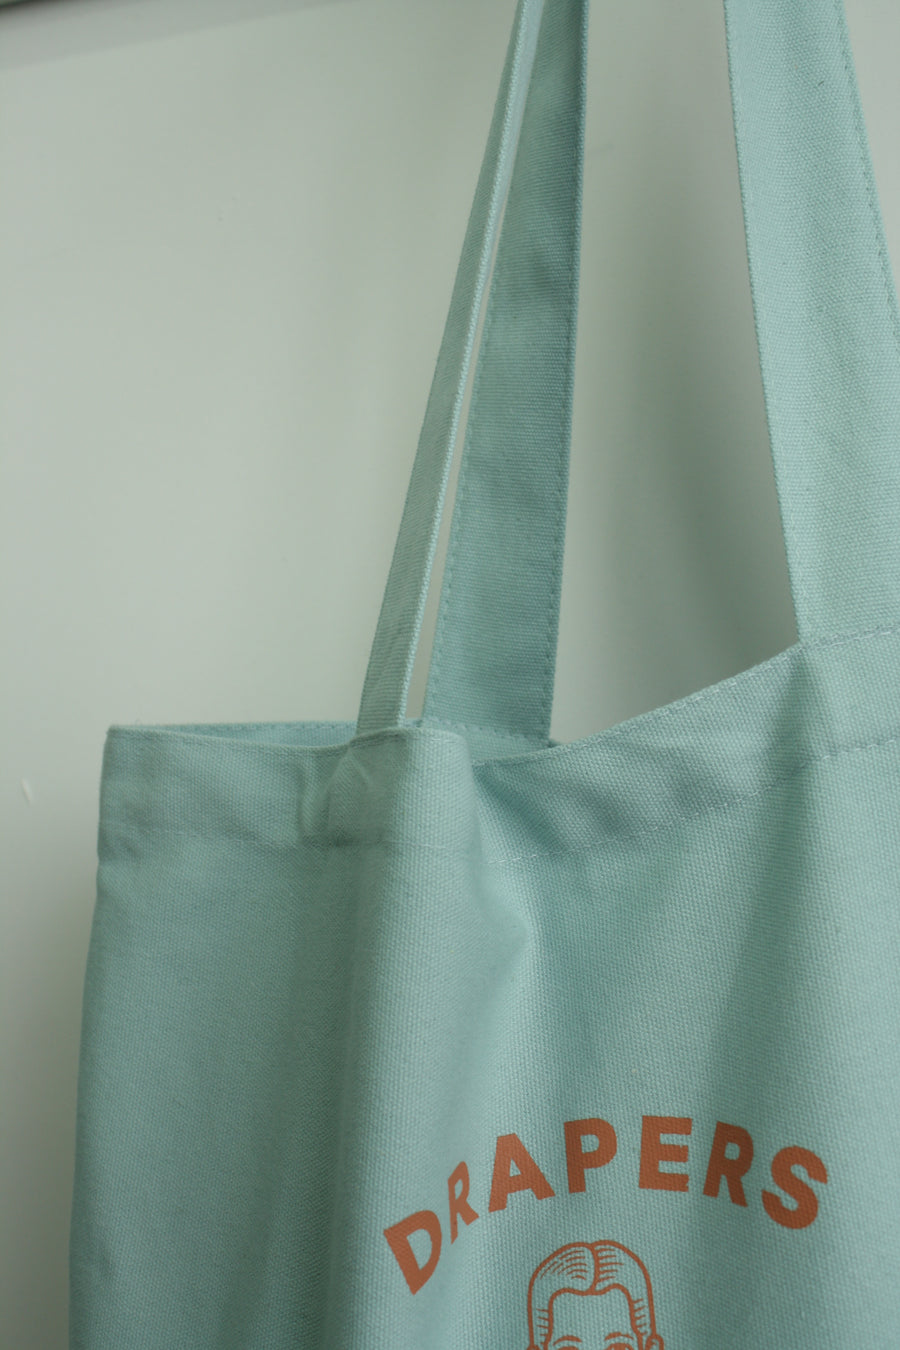 Drapers Tote - Peppermint